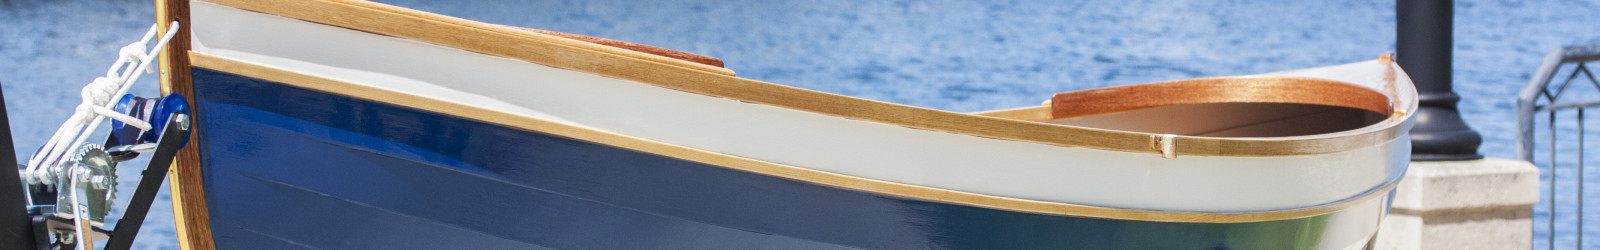 hand built wooden boat, that can be propelled with